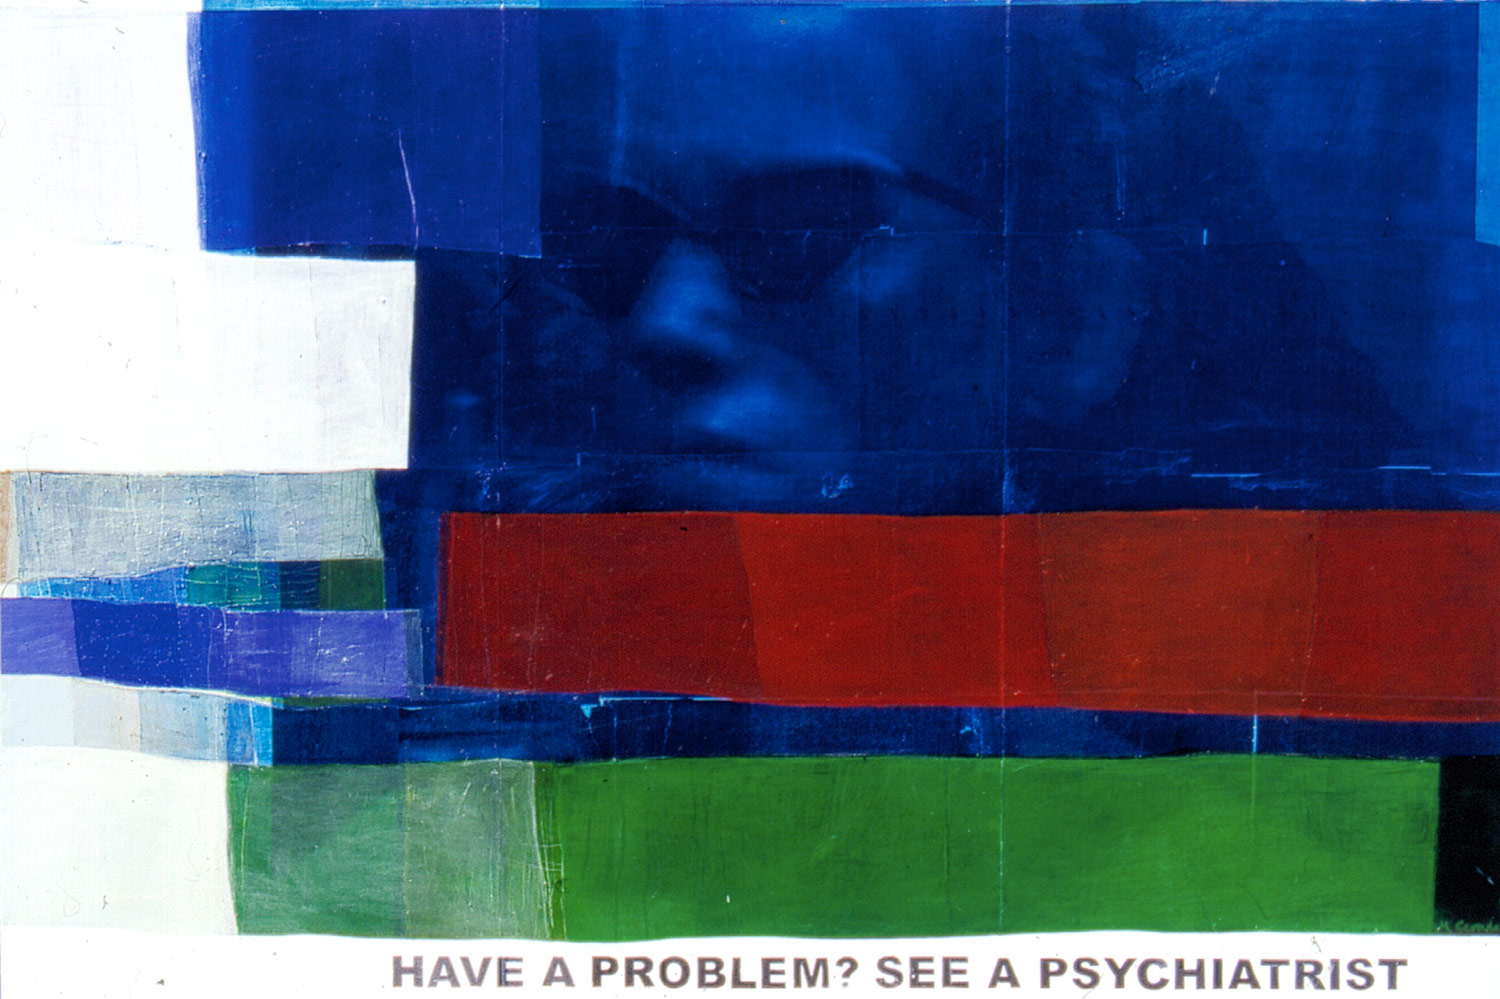 Have a problem? See a psychiatrist